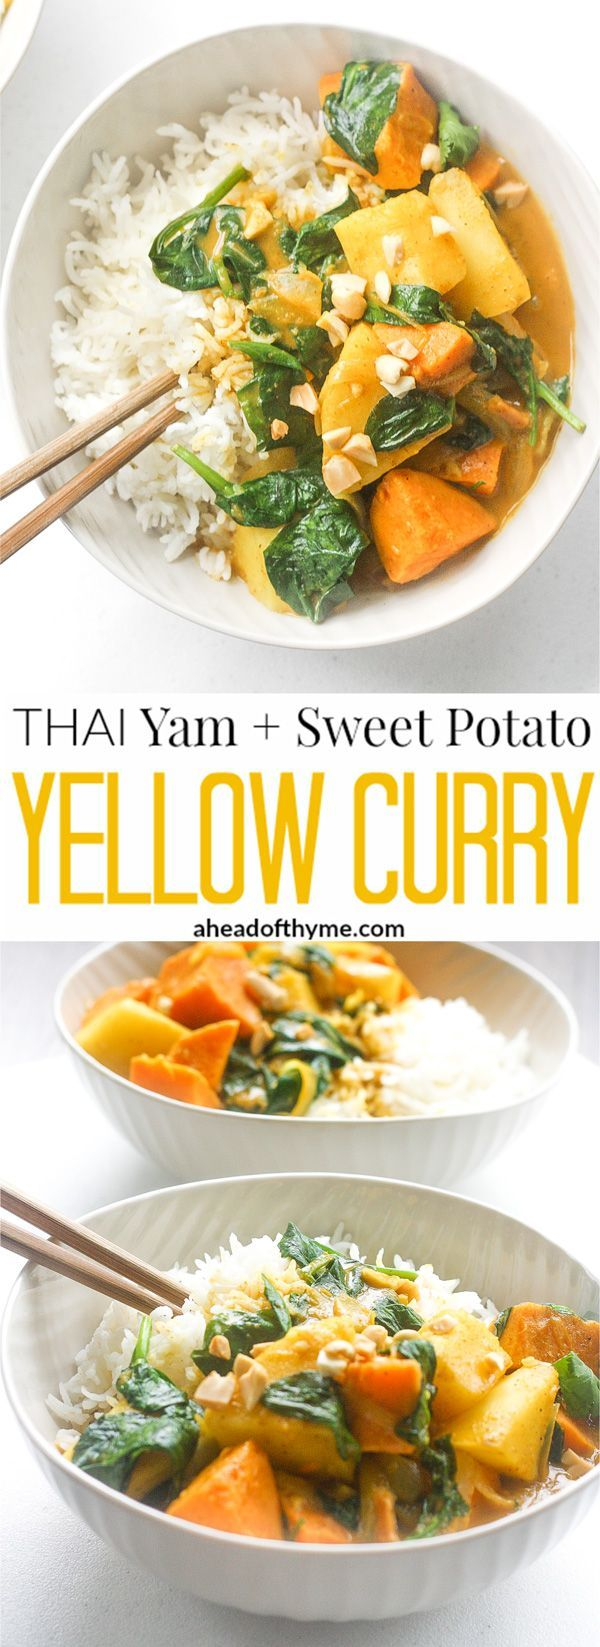 93 best thai recipes images on pinterest cooking recipes chicken thai yam and sweet potato yellow curry thai food recipesdinner recipesvegan forumfinder Images